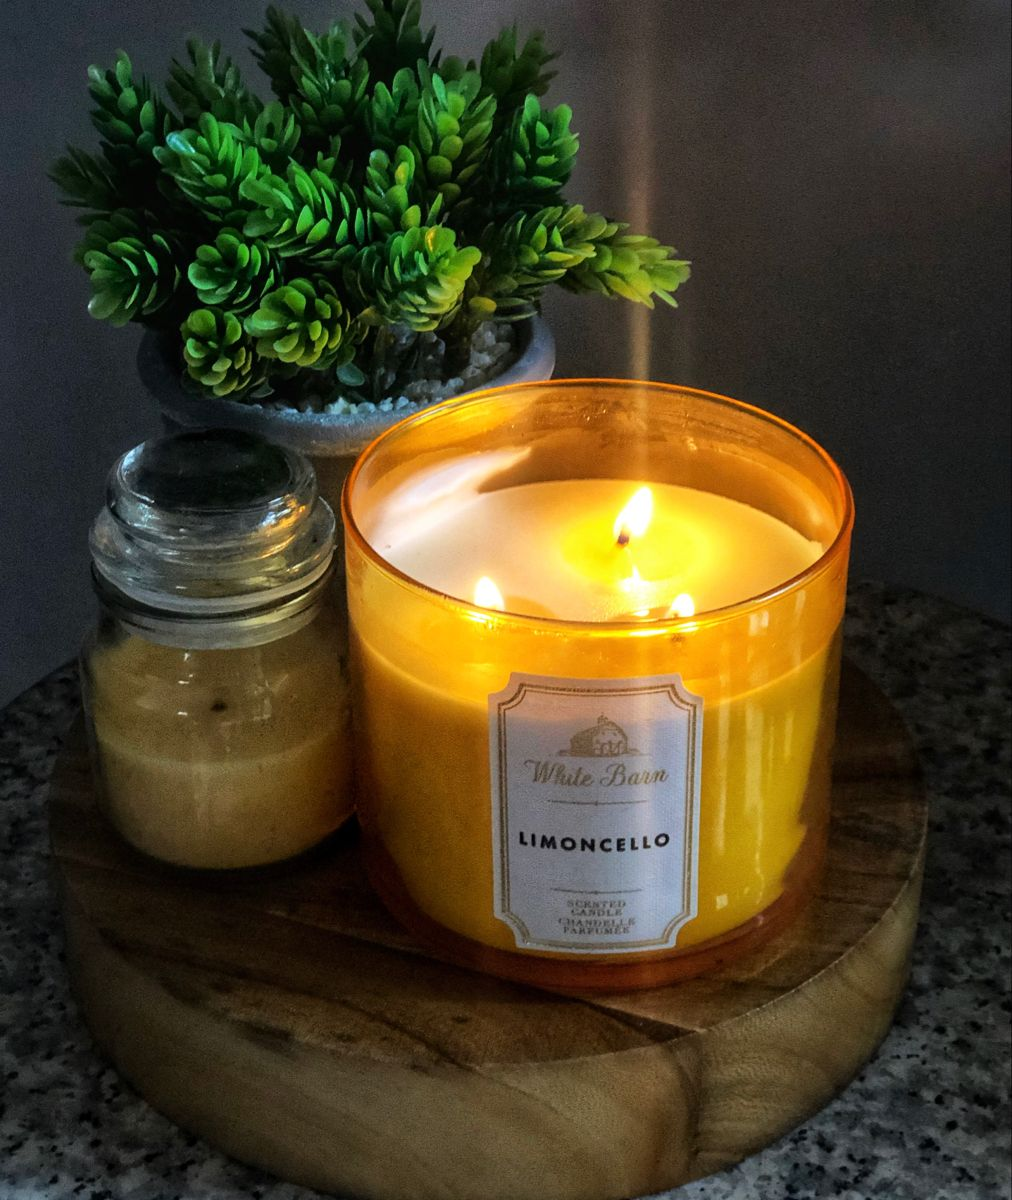 Black Chic Tin Handmade Soy Wax Luxury ROME CITRUS Scented Vegan Candle Gift for her